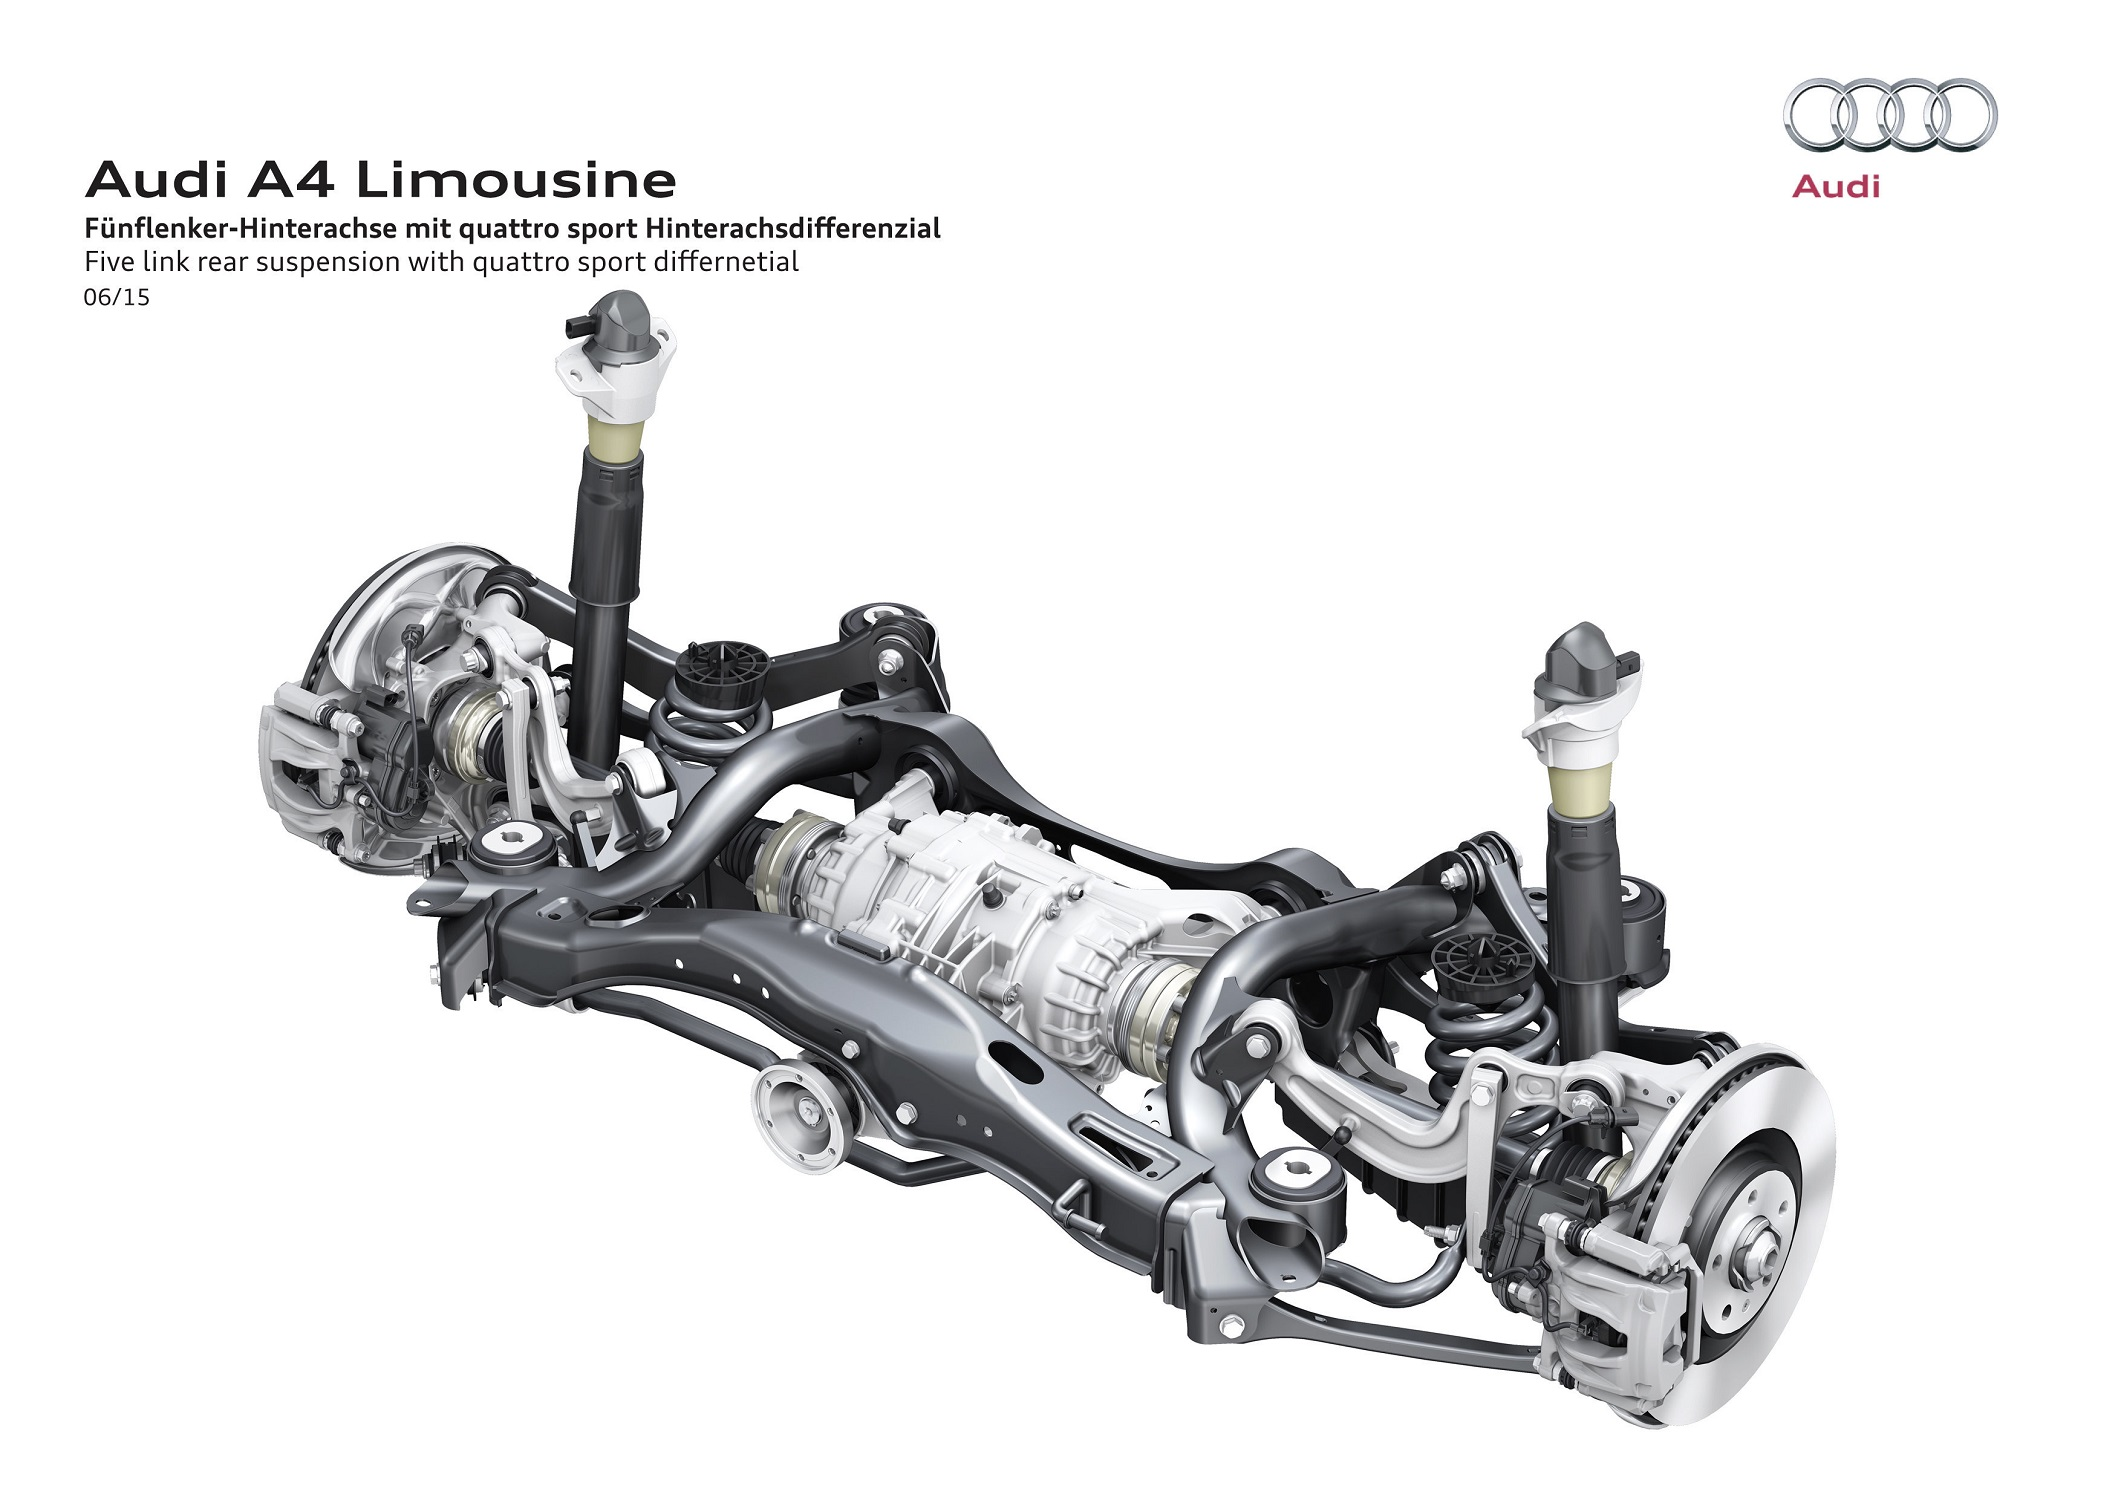 Audi A4 Five link rear suspension with quattro sport differential